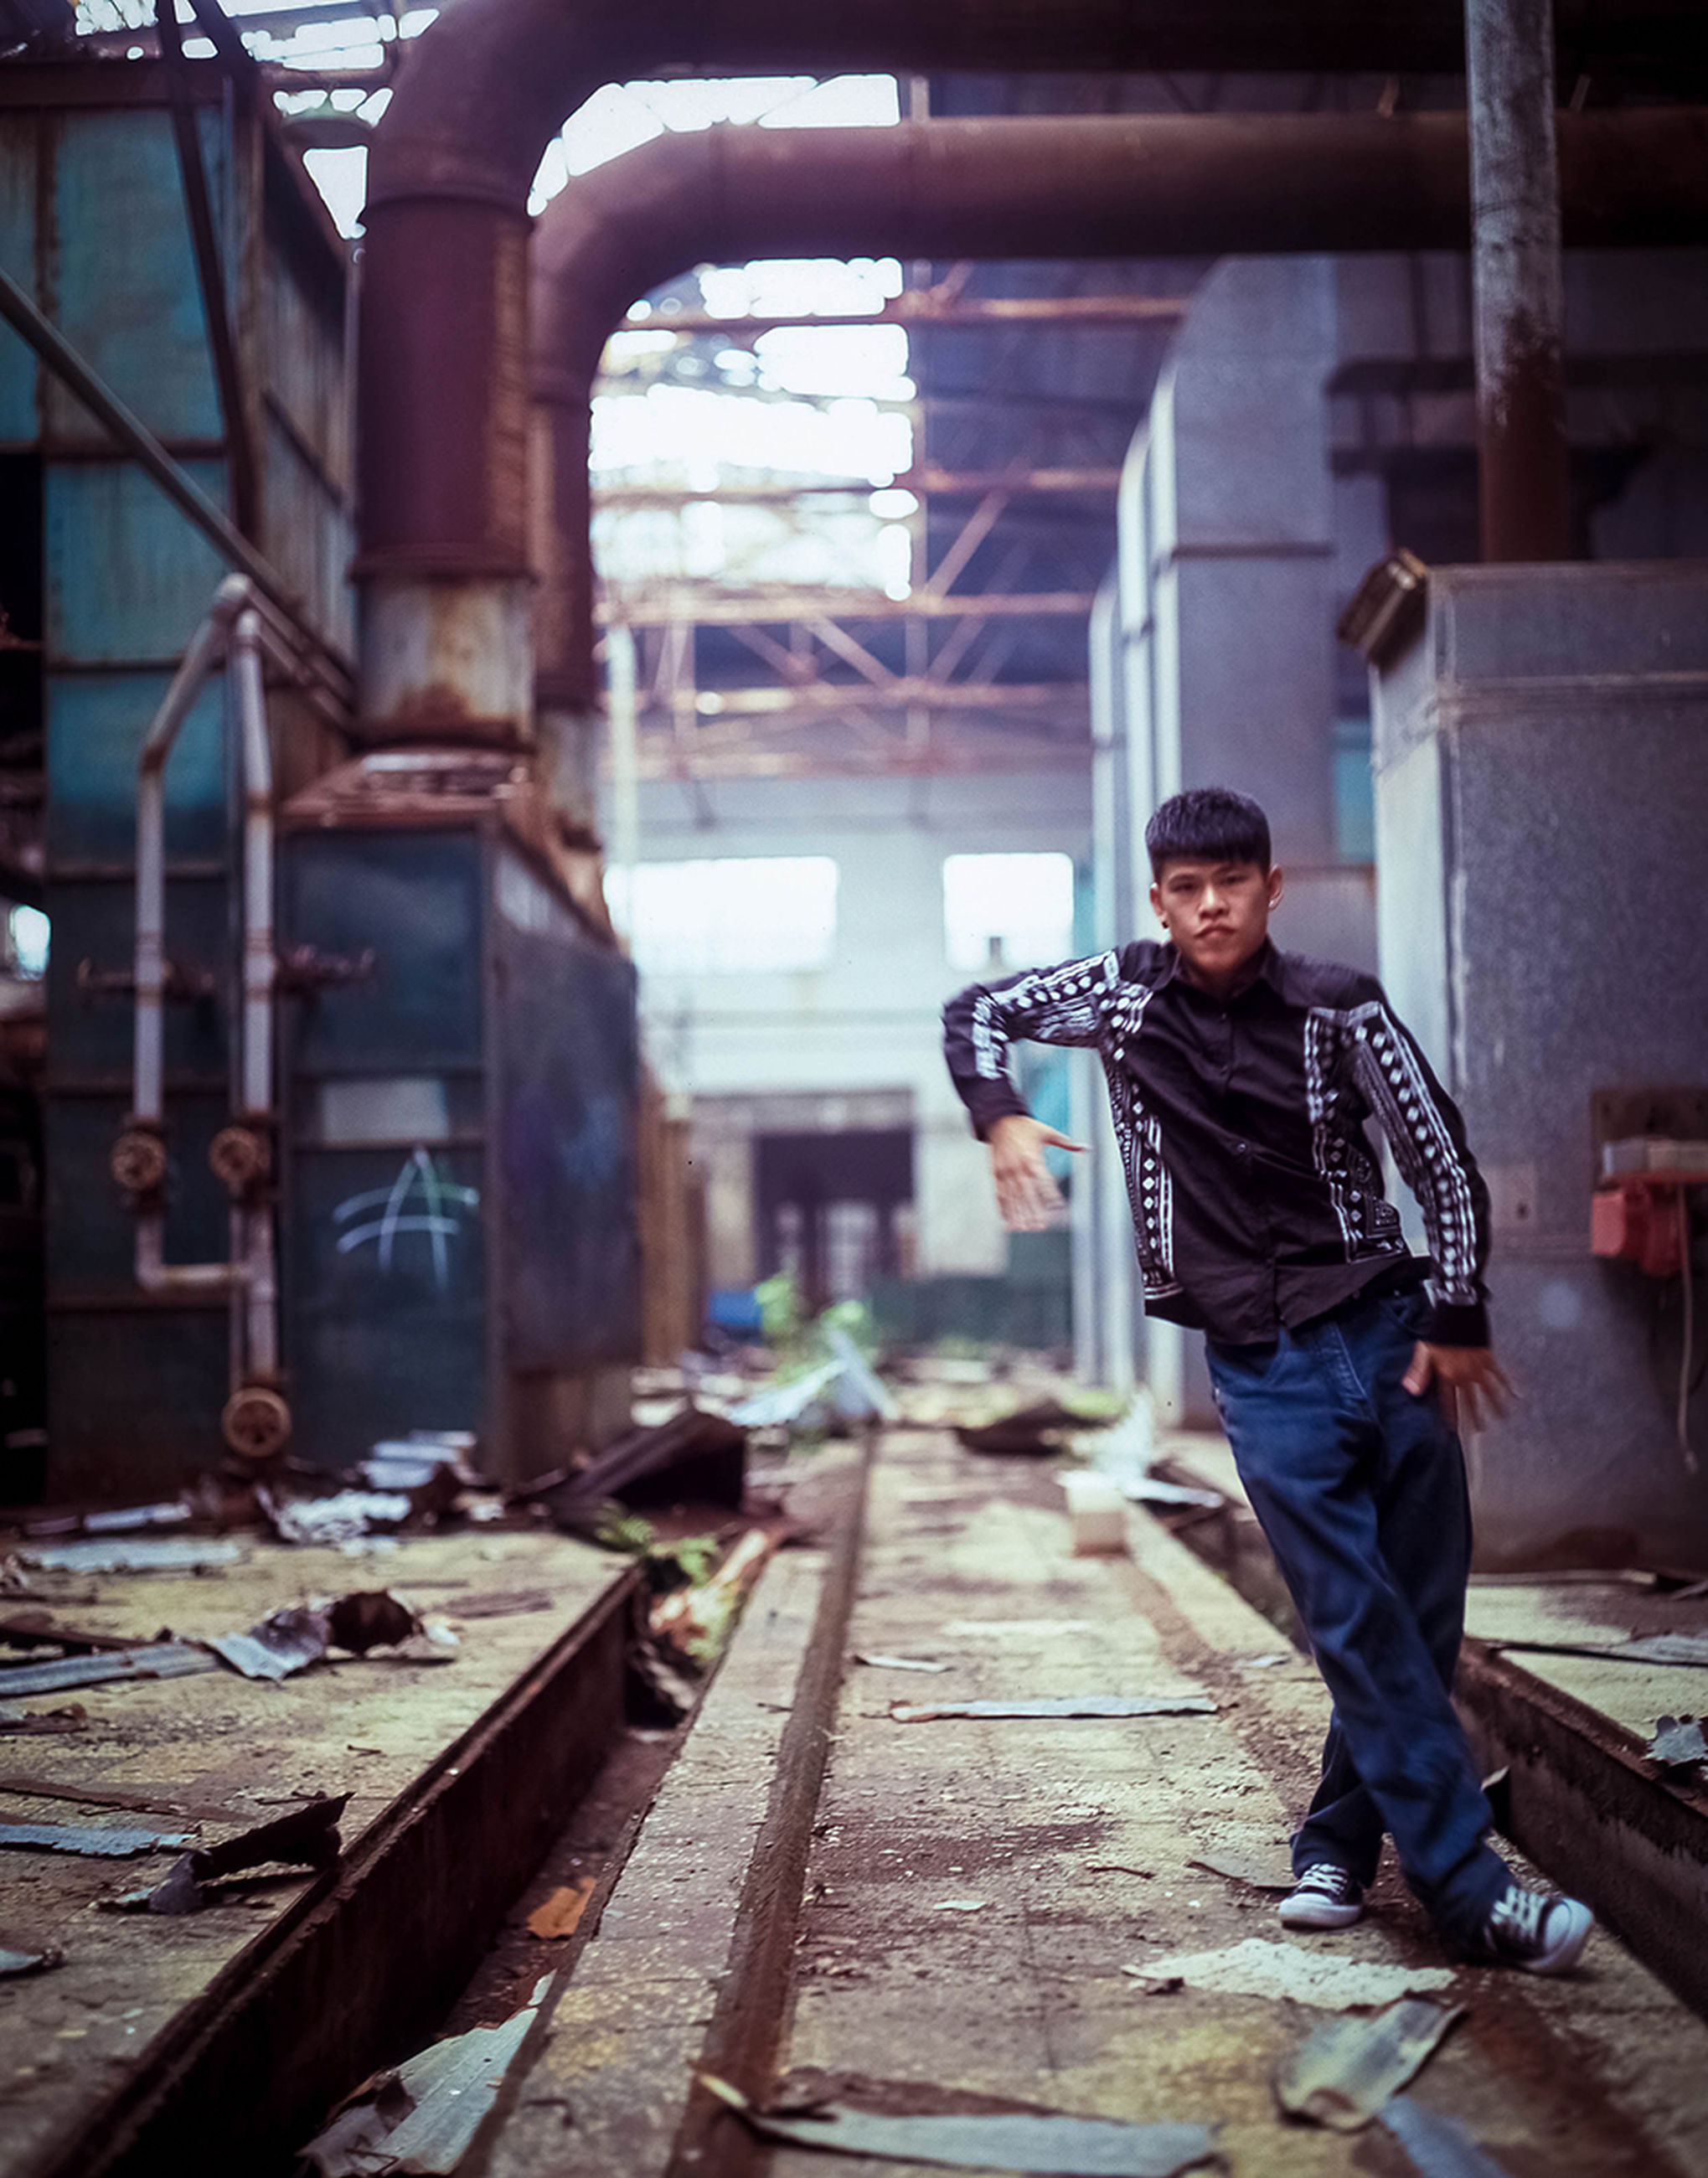 railroad track, full length, lifestyles, casual clothing, built structure, transportation, rail transportation, architecture, leisure activity, standing, men, building exterior, rear view, person, sitting, working, day, abandoned